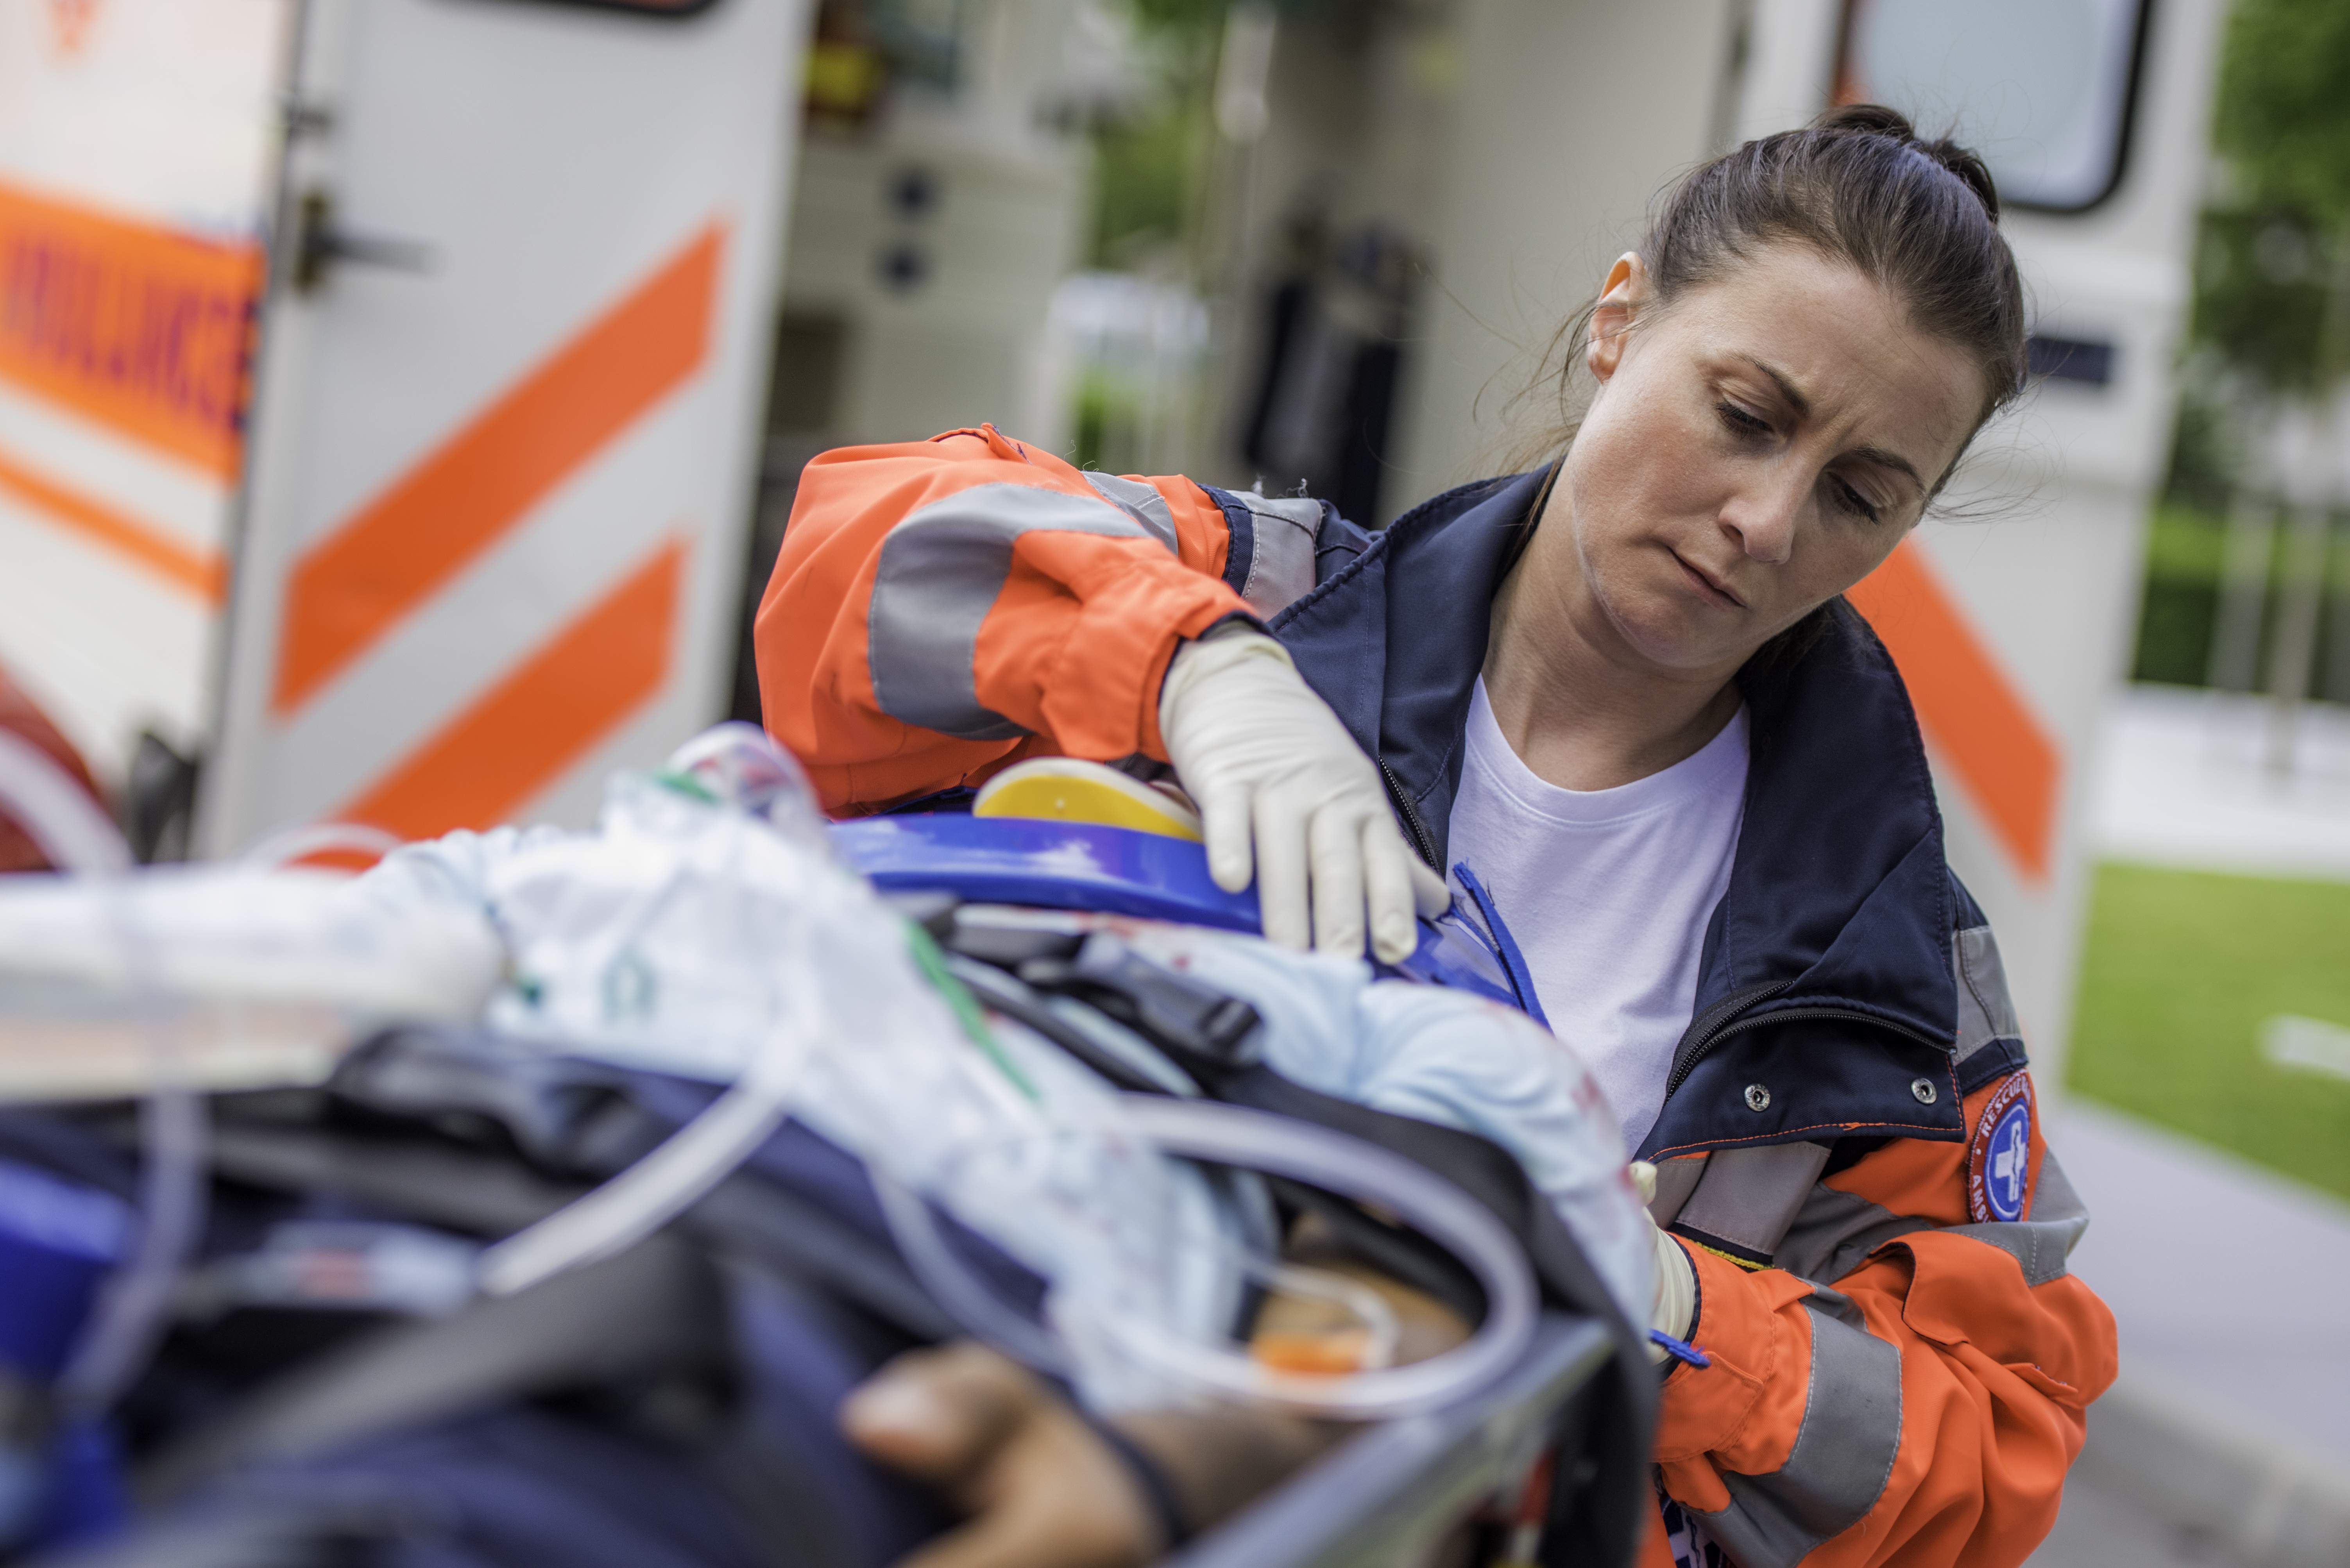 Female paramedic with patient